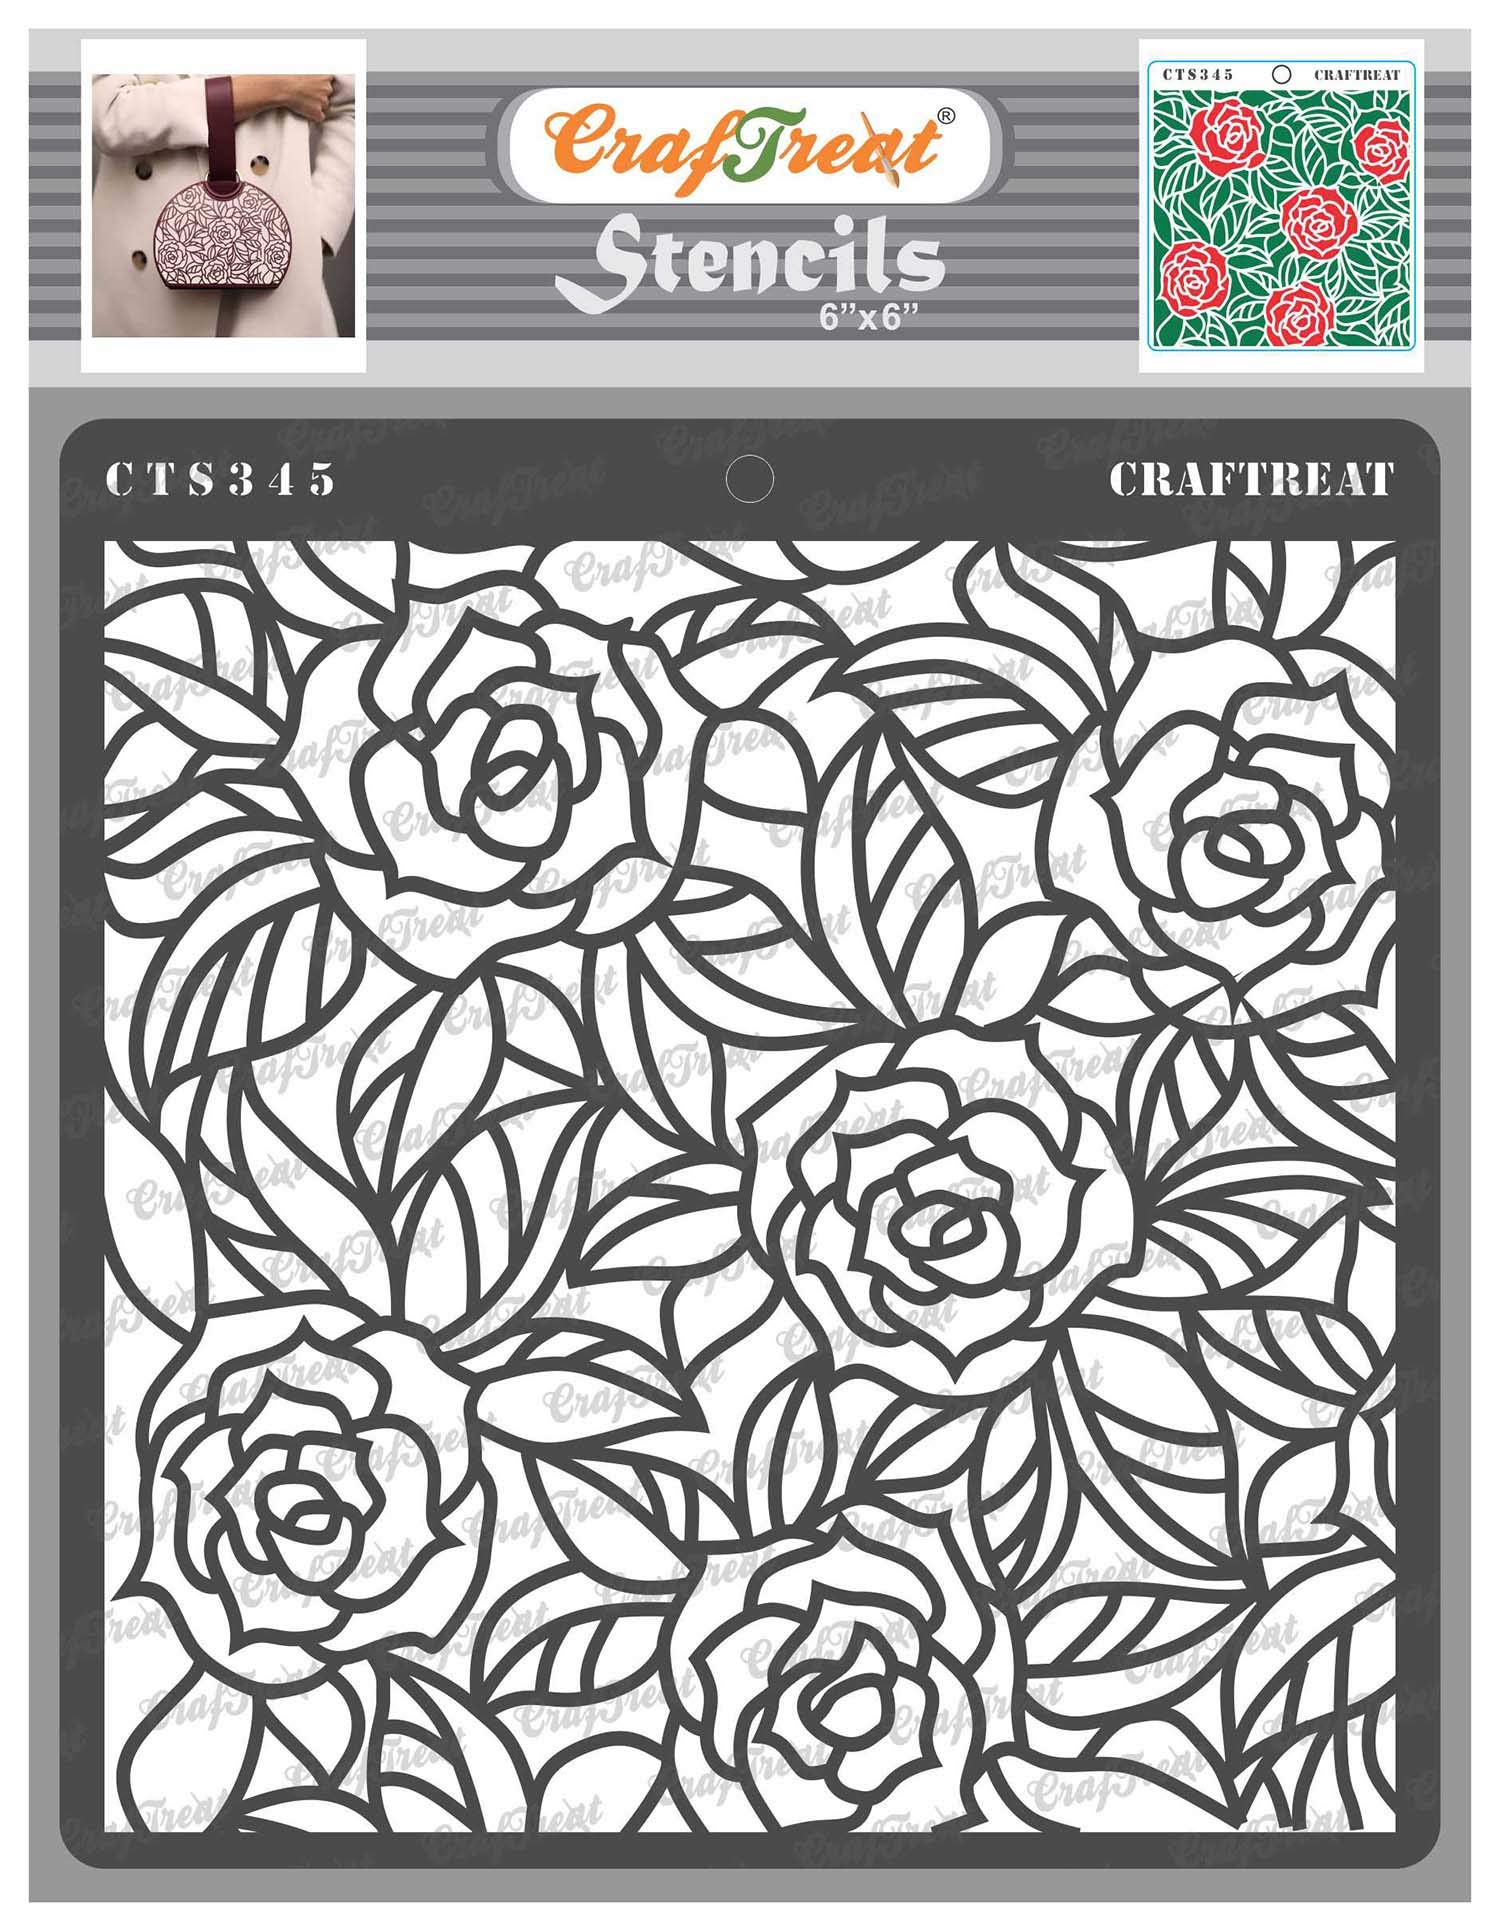 CrafTreat Rose Flower Stencils for Painting on Wood, Canvas, Paper, Fabric, Floor, Wall and Tile -Rose with Leaf Background - 6x6 Inches - Reusable DIY Art and Craft Stencils for Painting Flowers